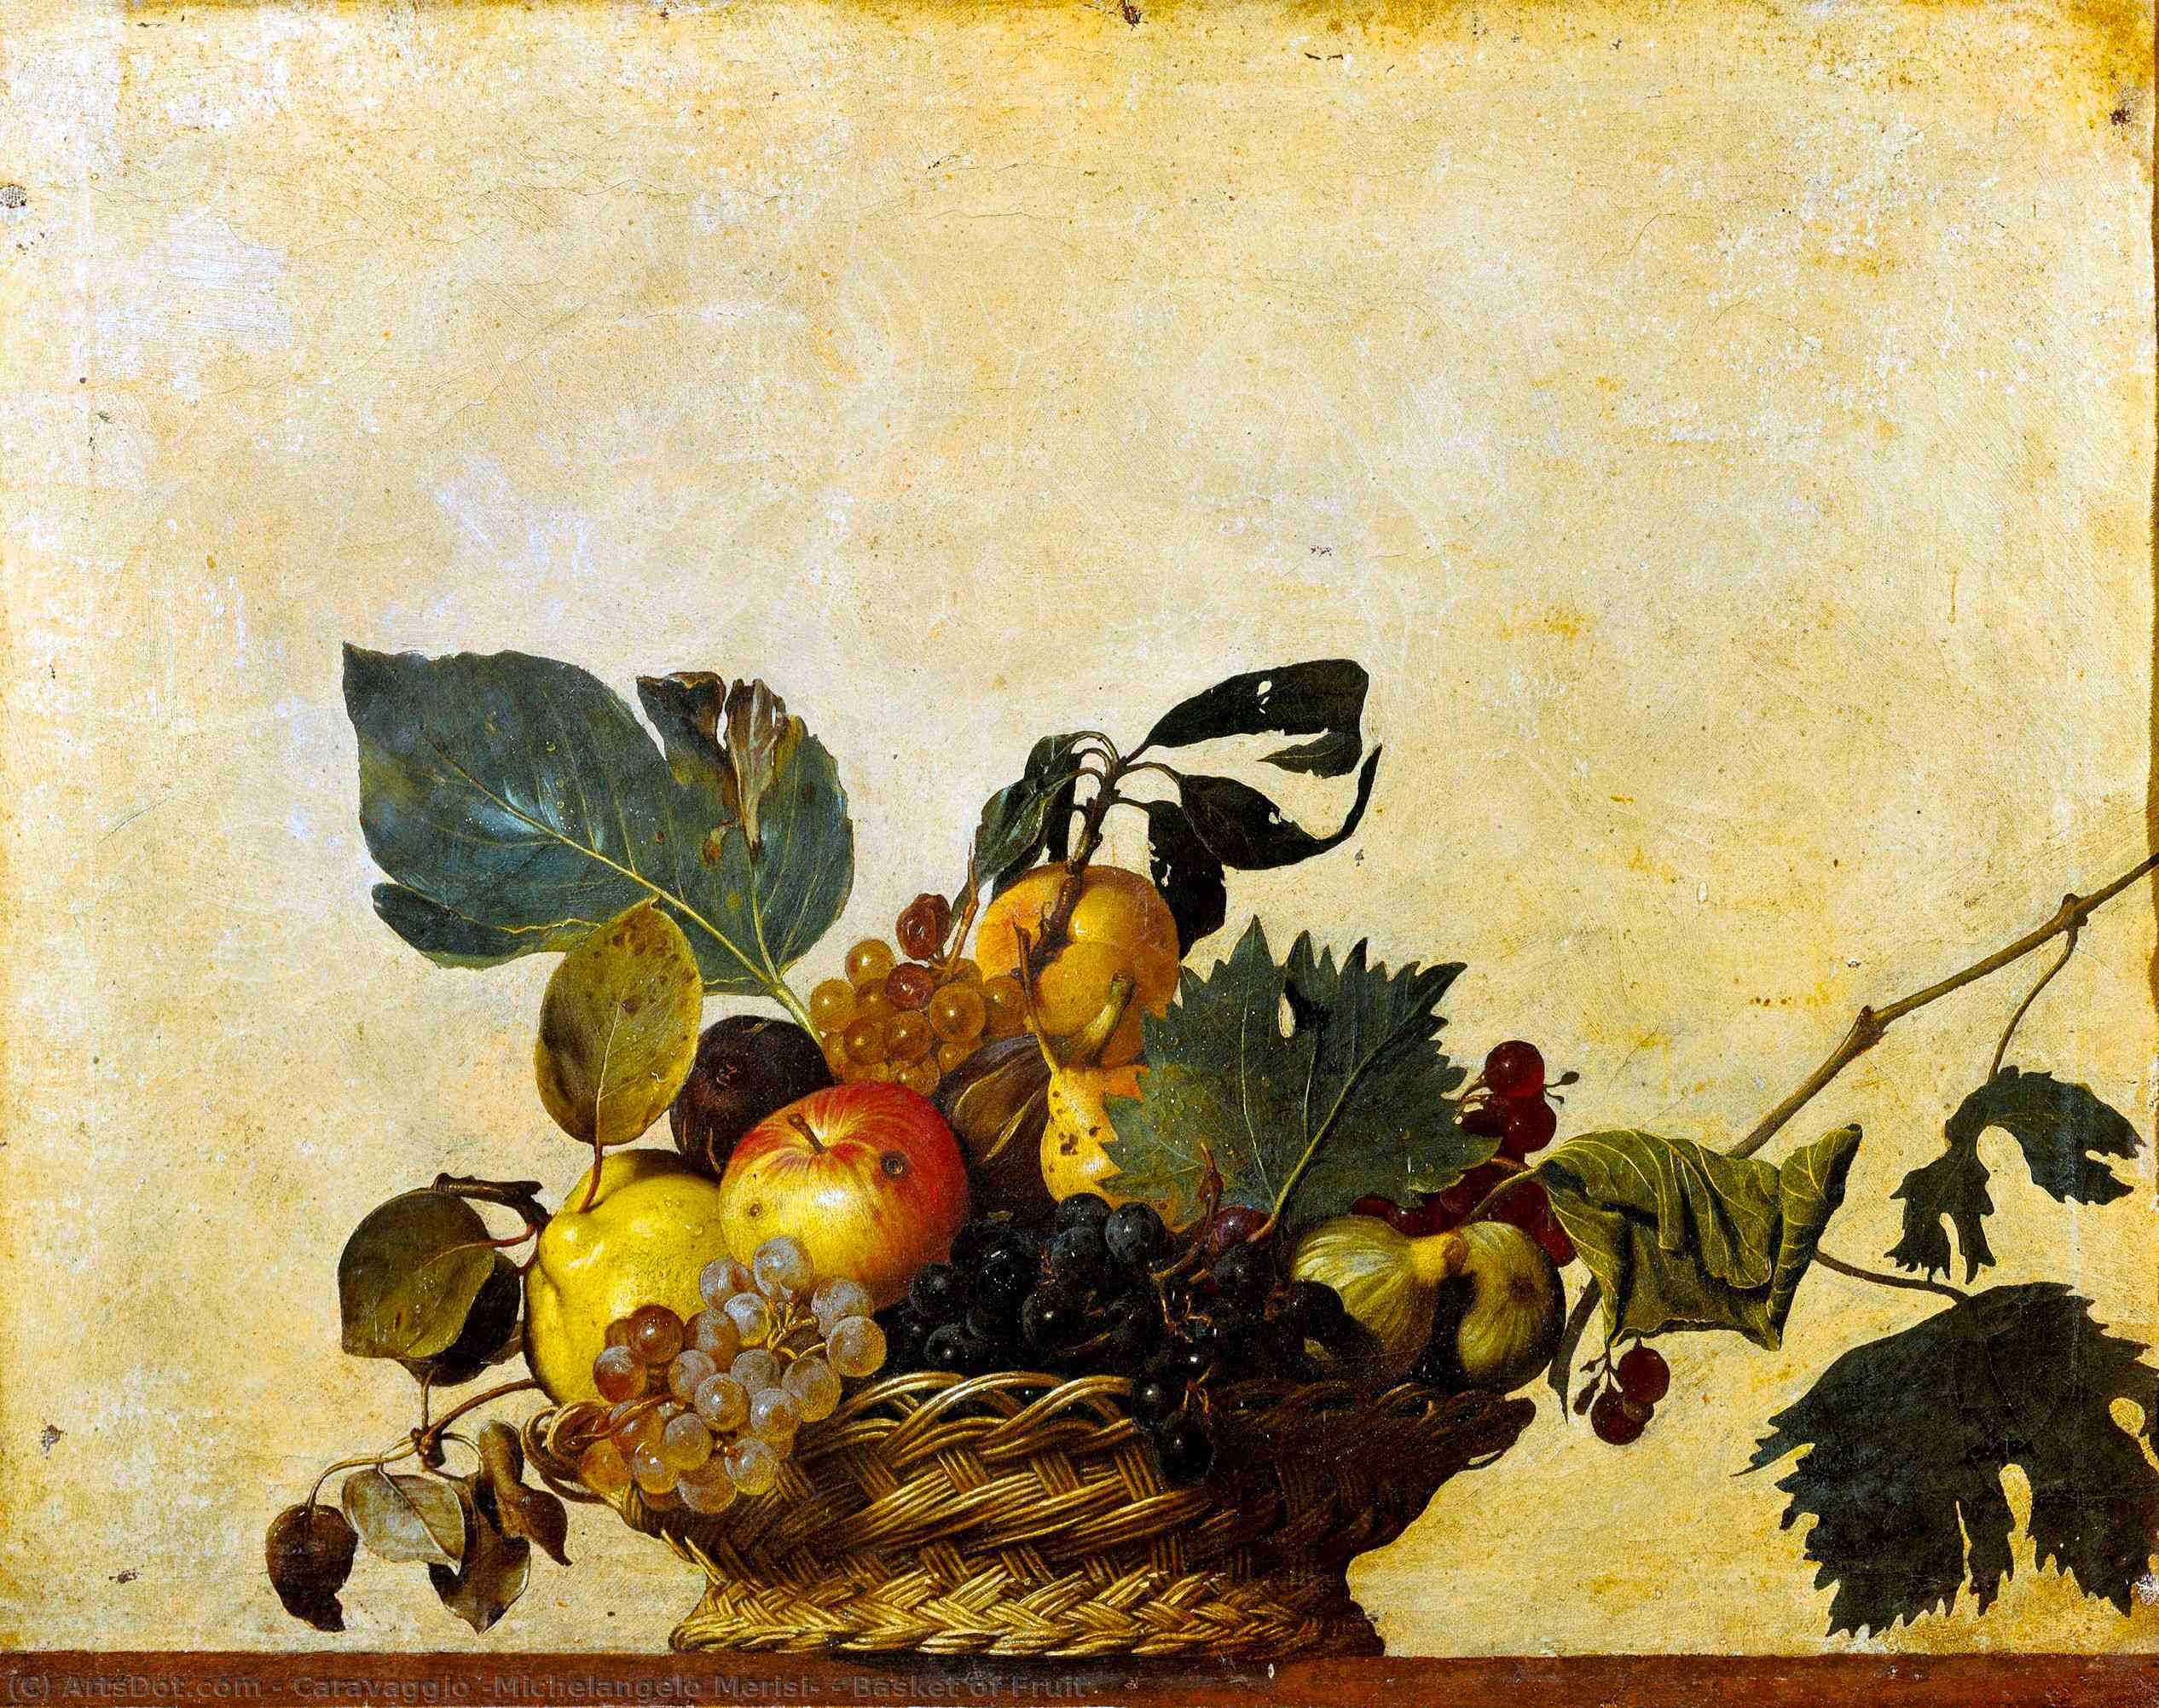 Wikioo.org - The Encyclopedia of Fine Arts - Painting, Artwork by Caravaggio (Michelangelo Merisi) - Basket of Fruit